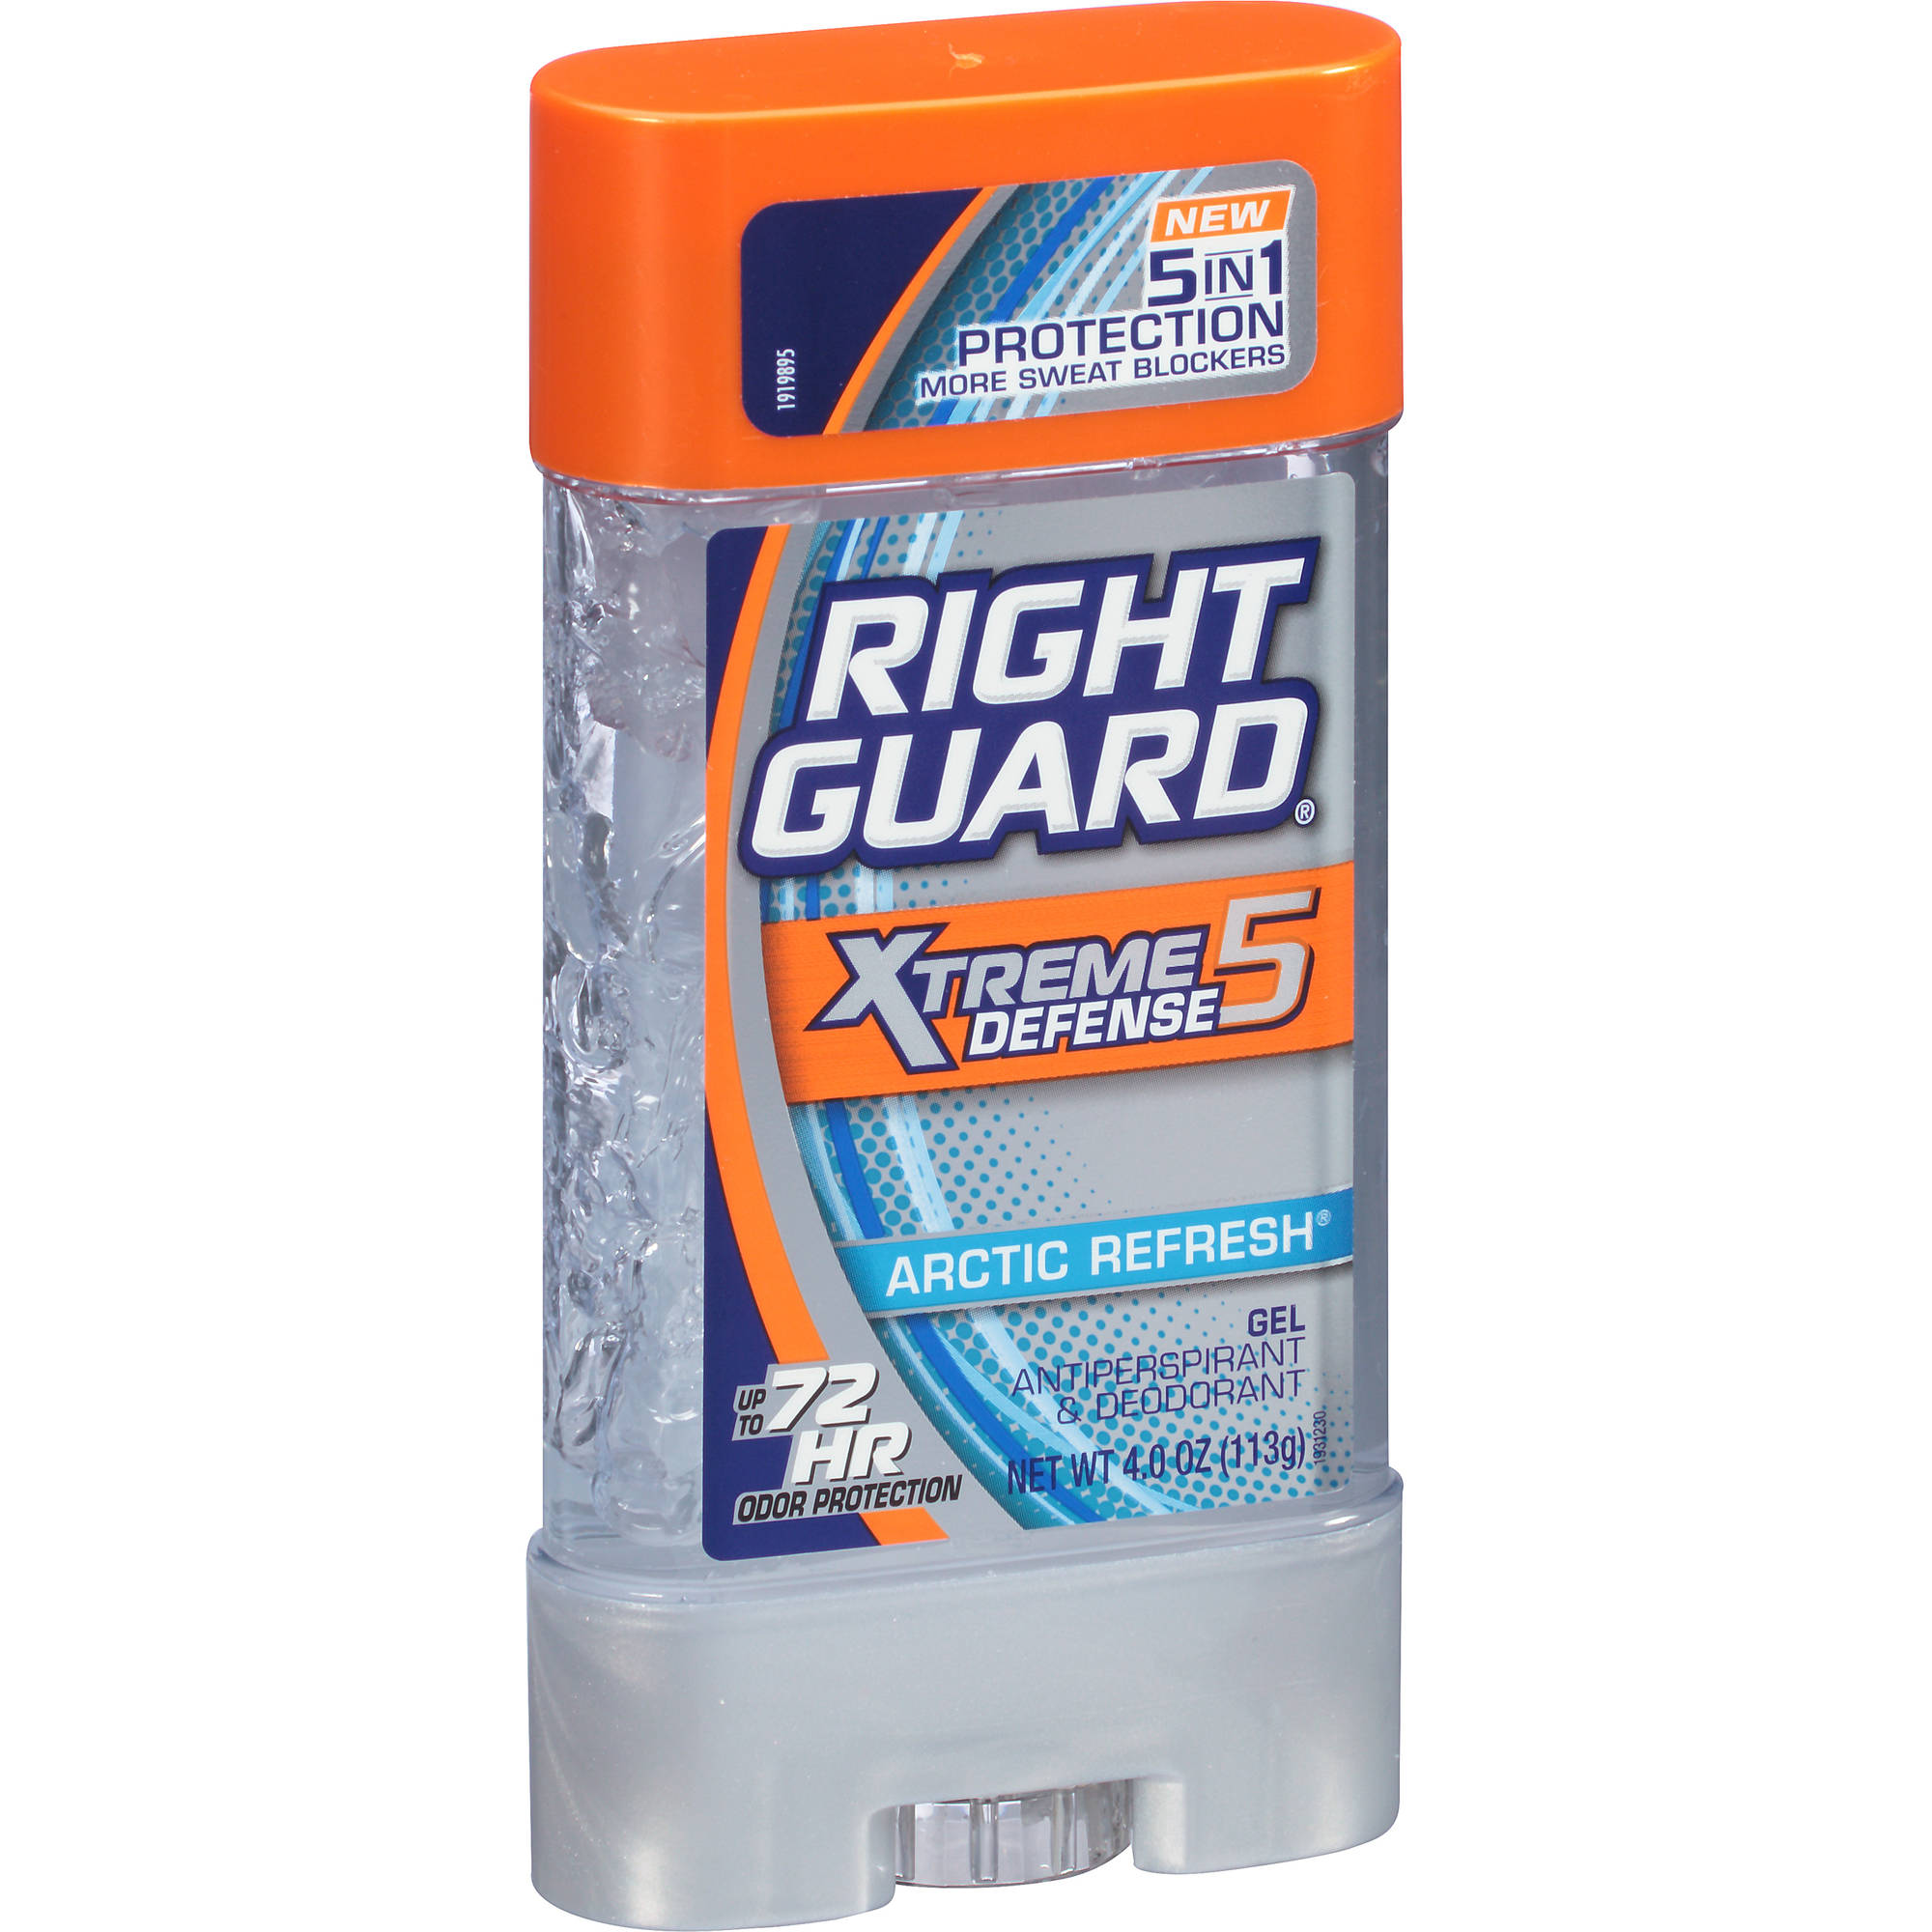 Right Guard Xtreme Ultra Gel Arctic Refresh Anti-Perspirant/Deodorant, 4 oz